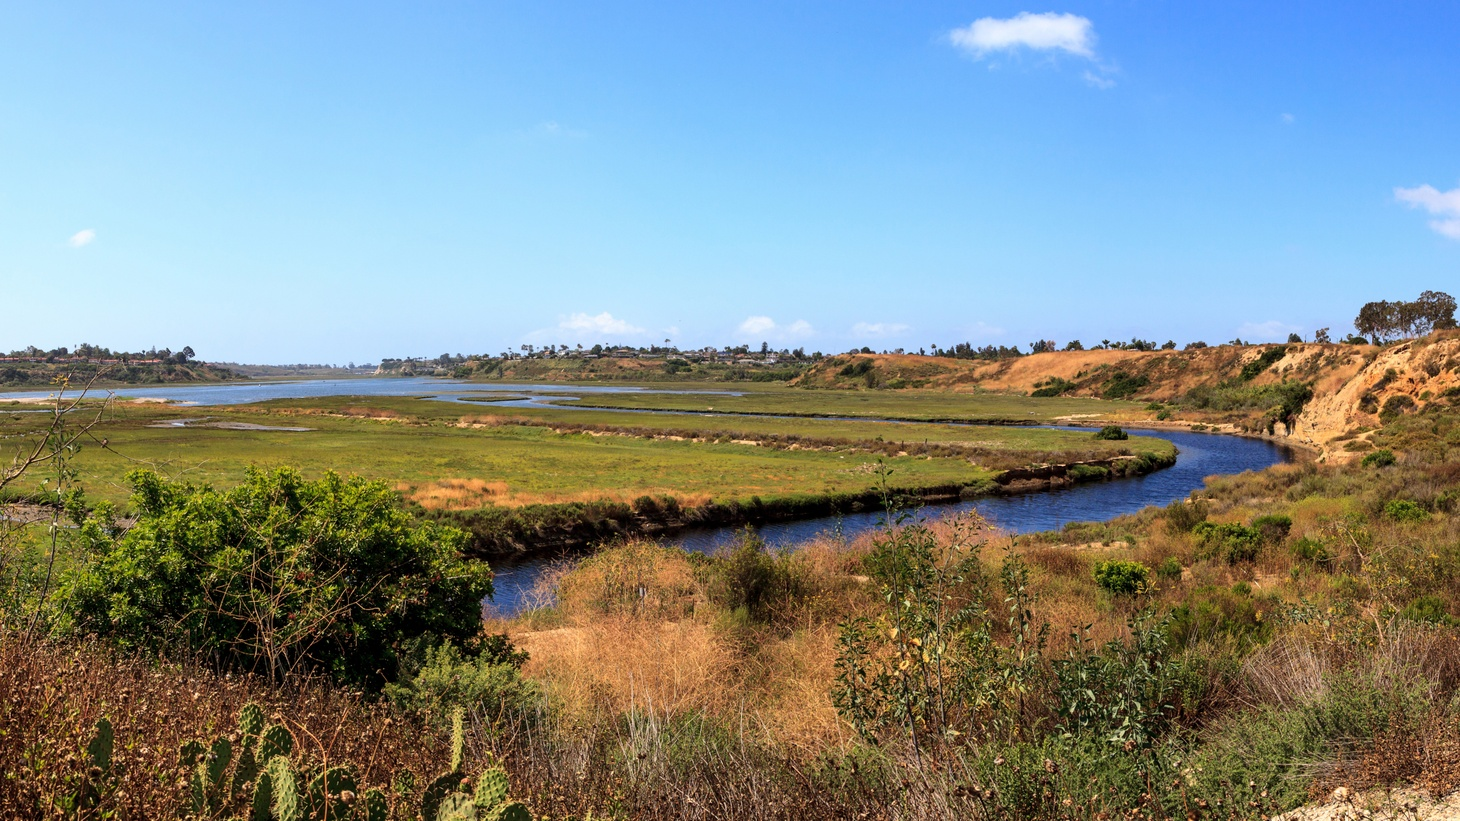 In Upper Newport Bay, a parcel of land is being sold to a wealthy local political donor named Buck Johns for $13,000.